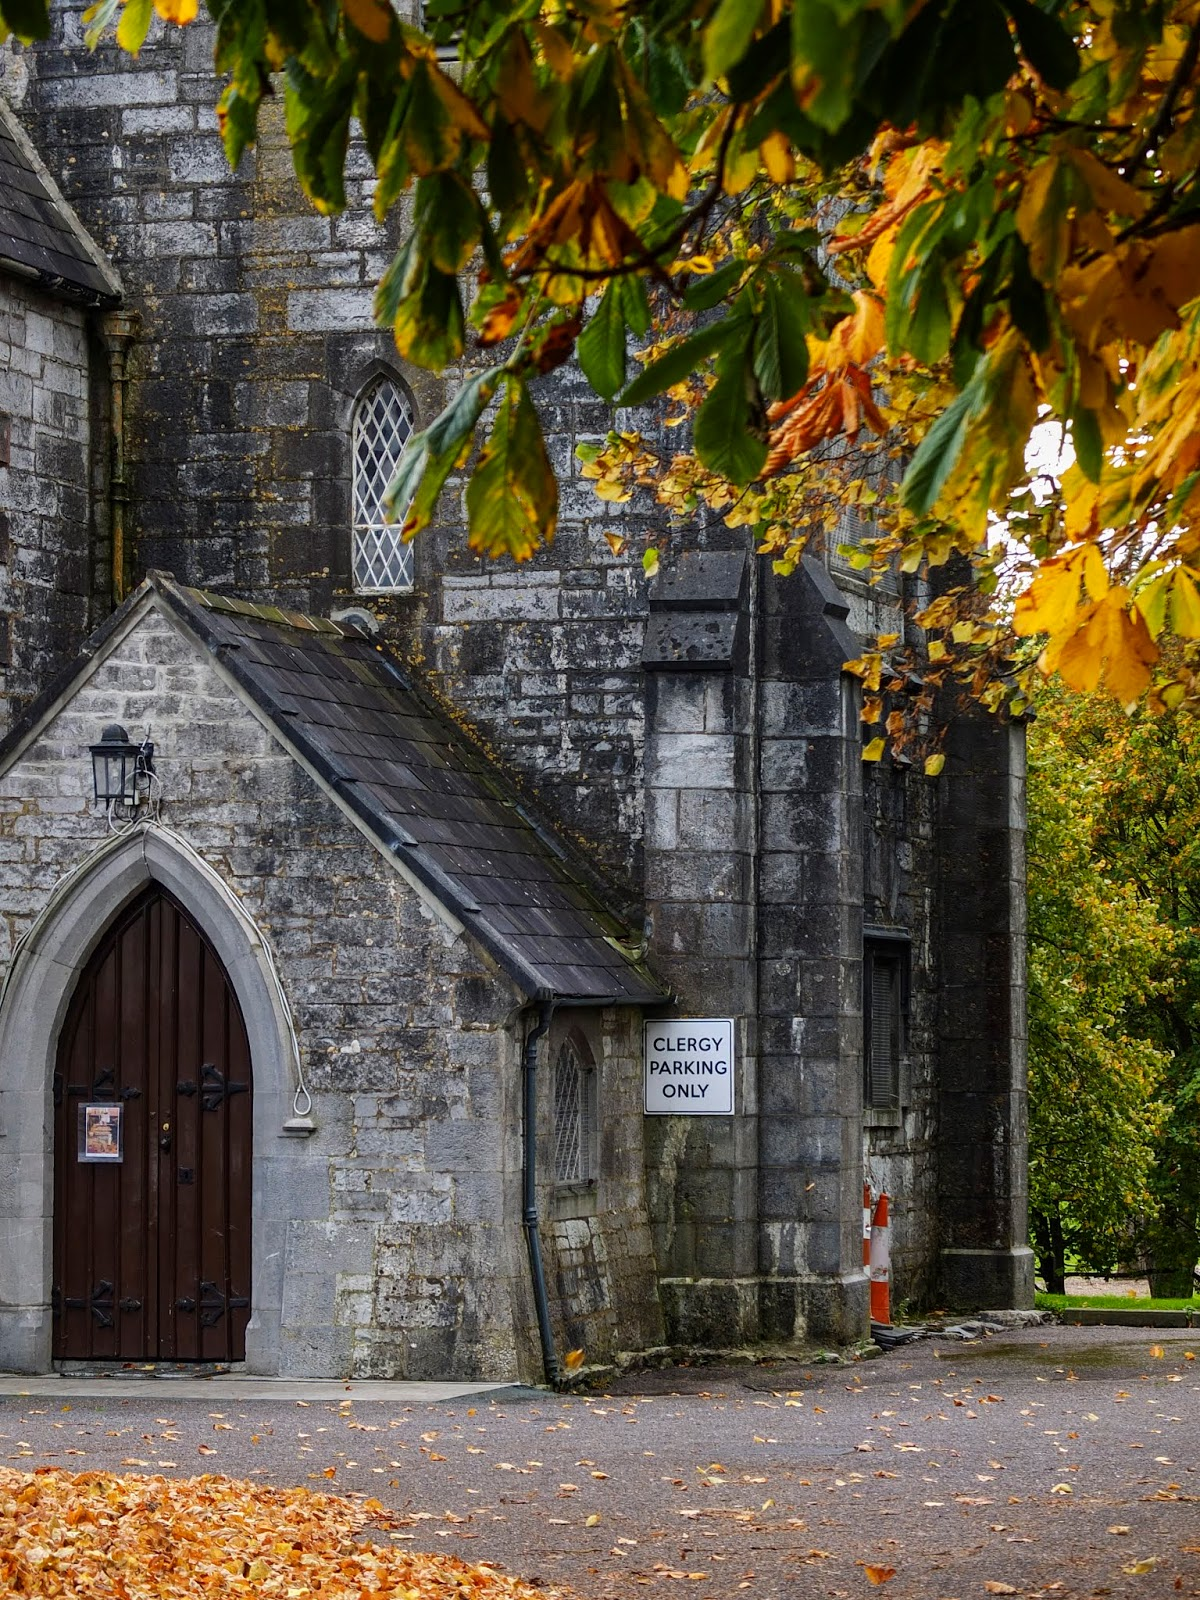 St. James' Church in Mallow, Co.Cork on an autumn day.